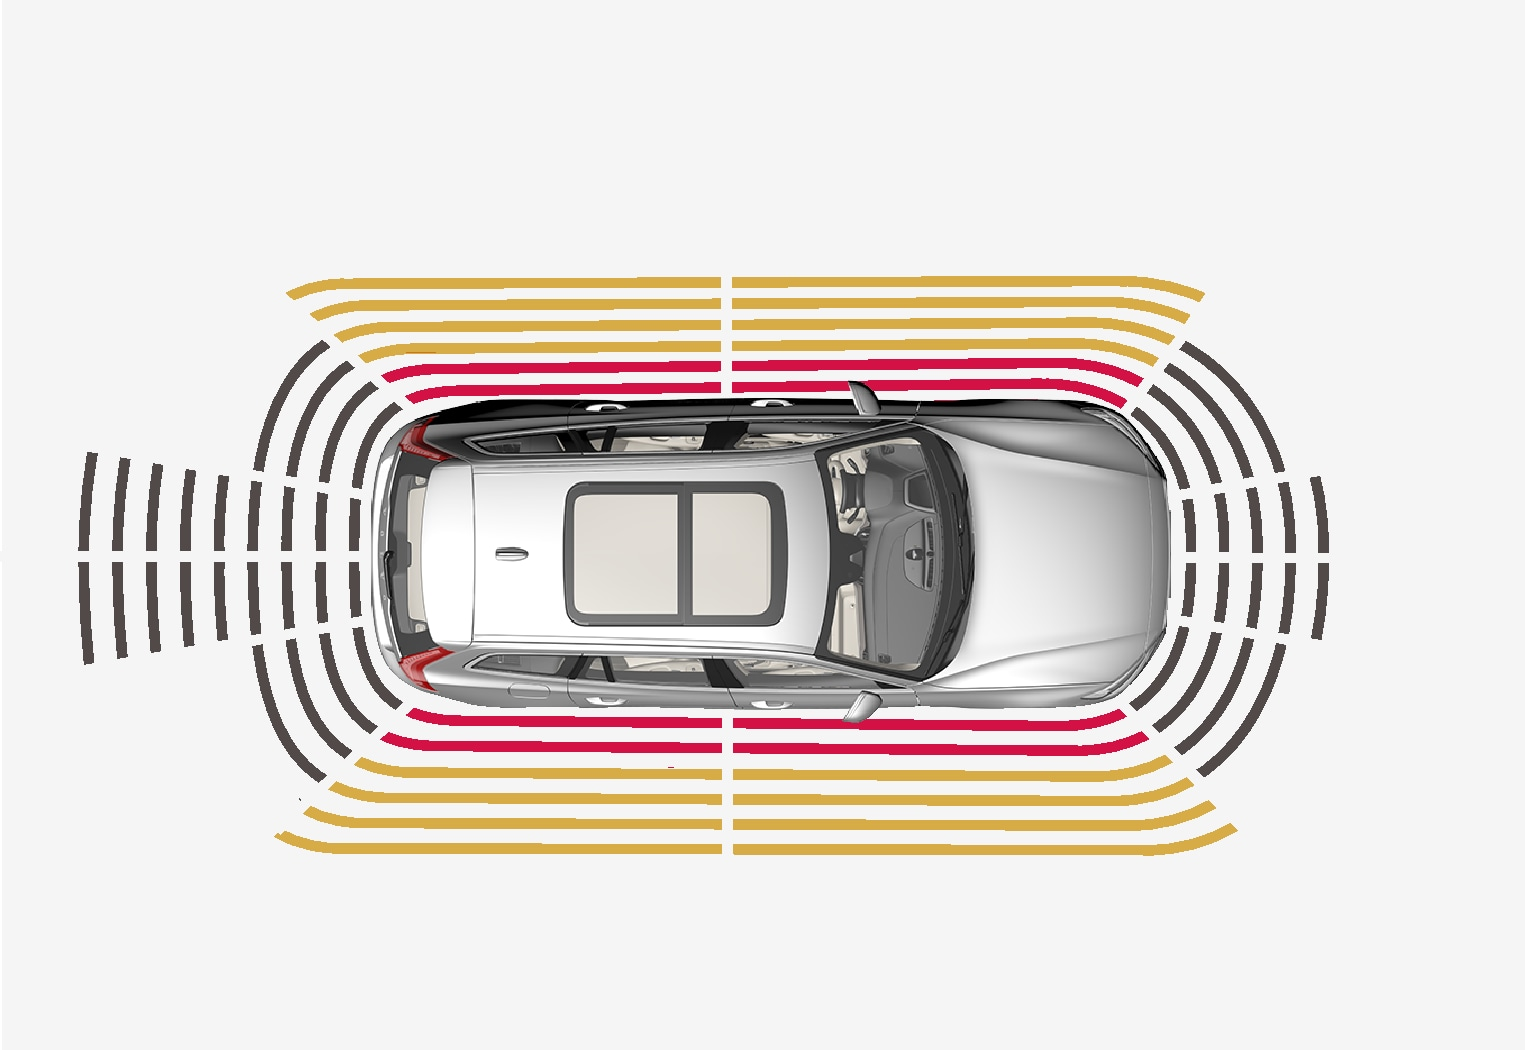 P5+6-1817 -Park Assist System-Sectors